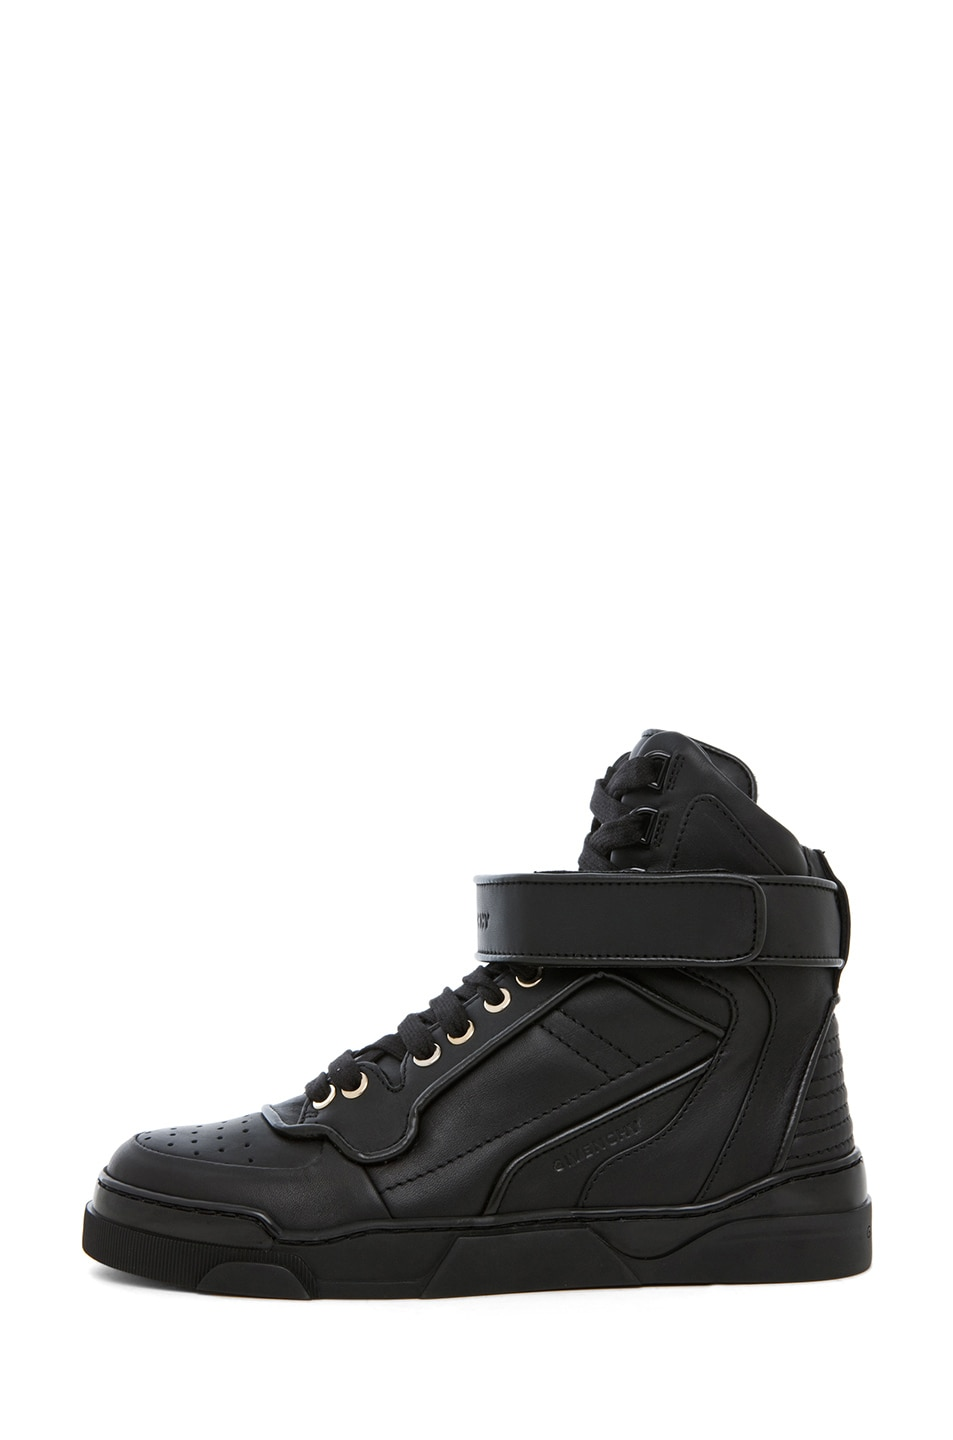 Image 1 of GIVENCHY Sneaker in Black